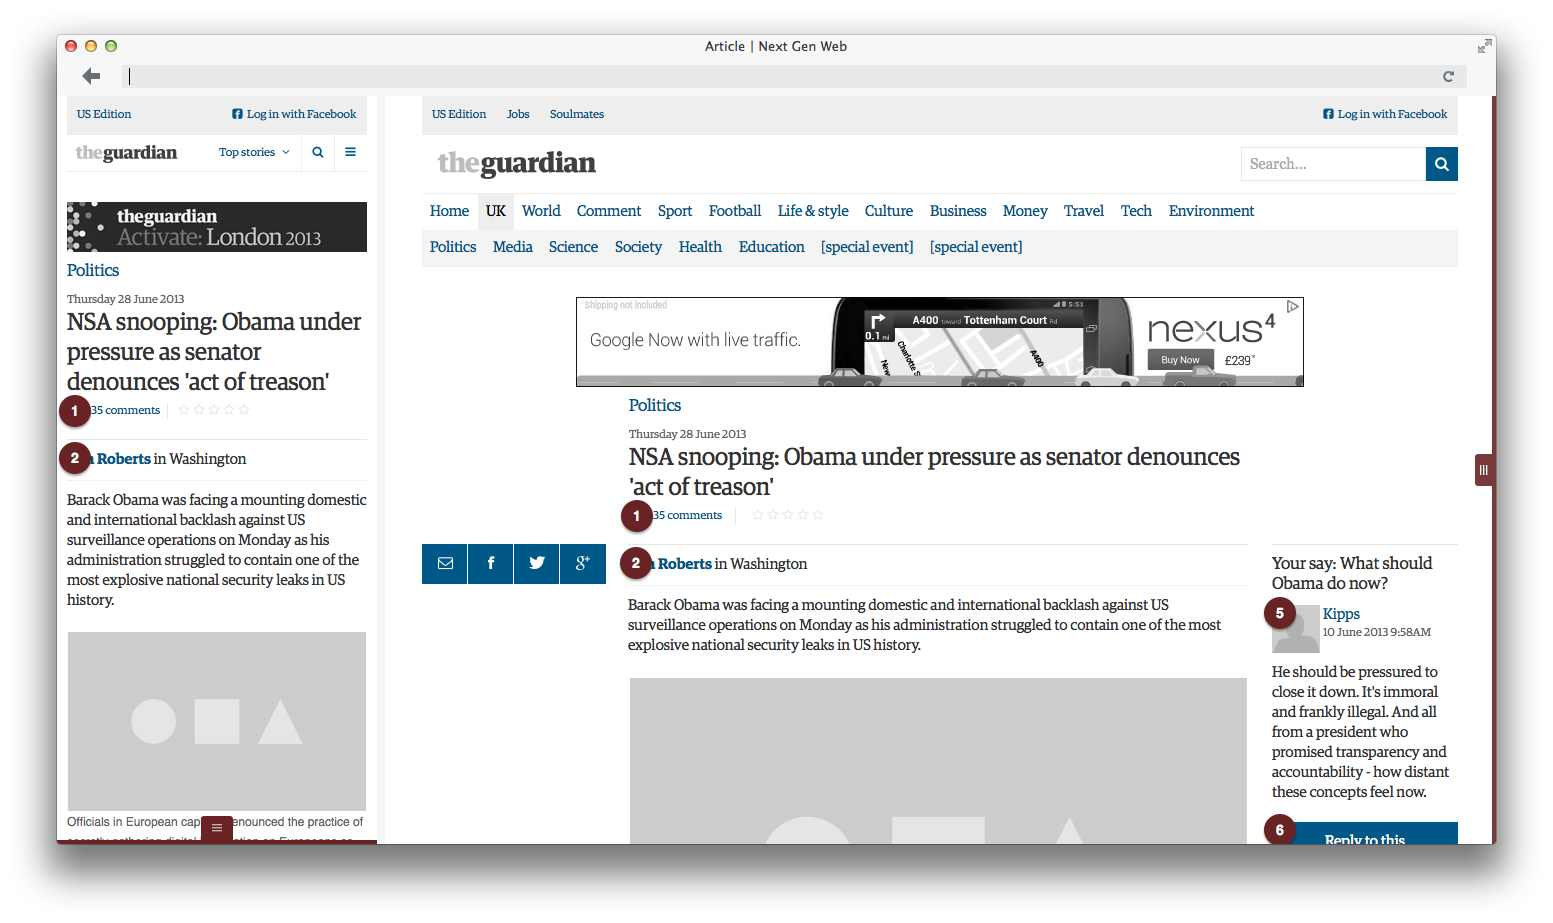 An example article wireframe for the Guardian responsive site, showing small and large screen versions side by side.